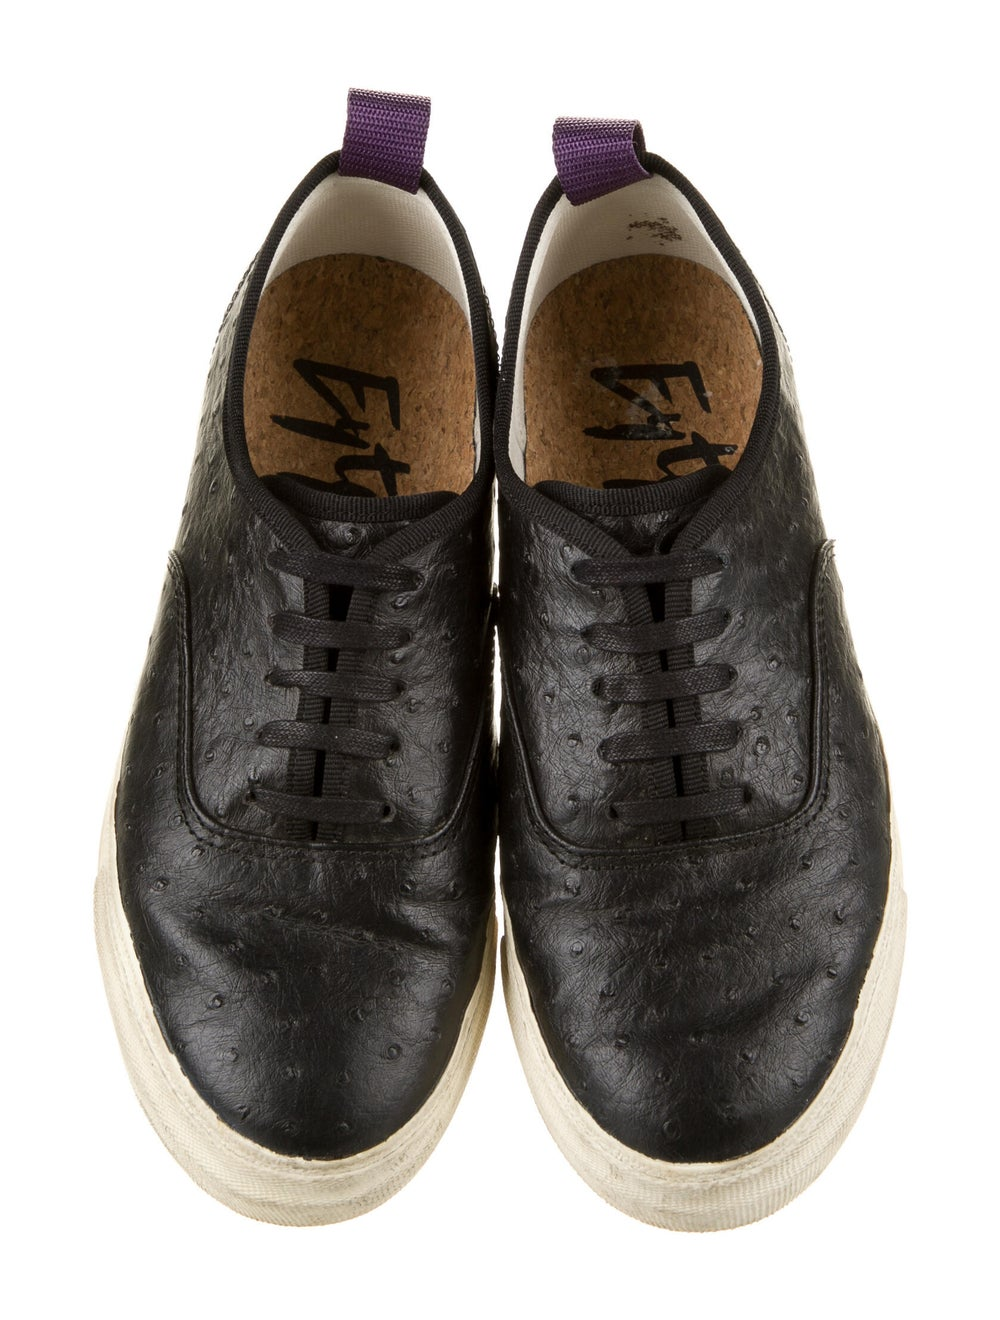 Eytys Ostrich Sneakers Black - image 3